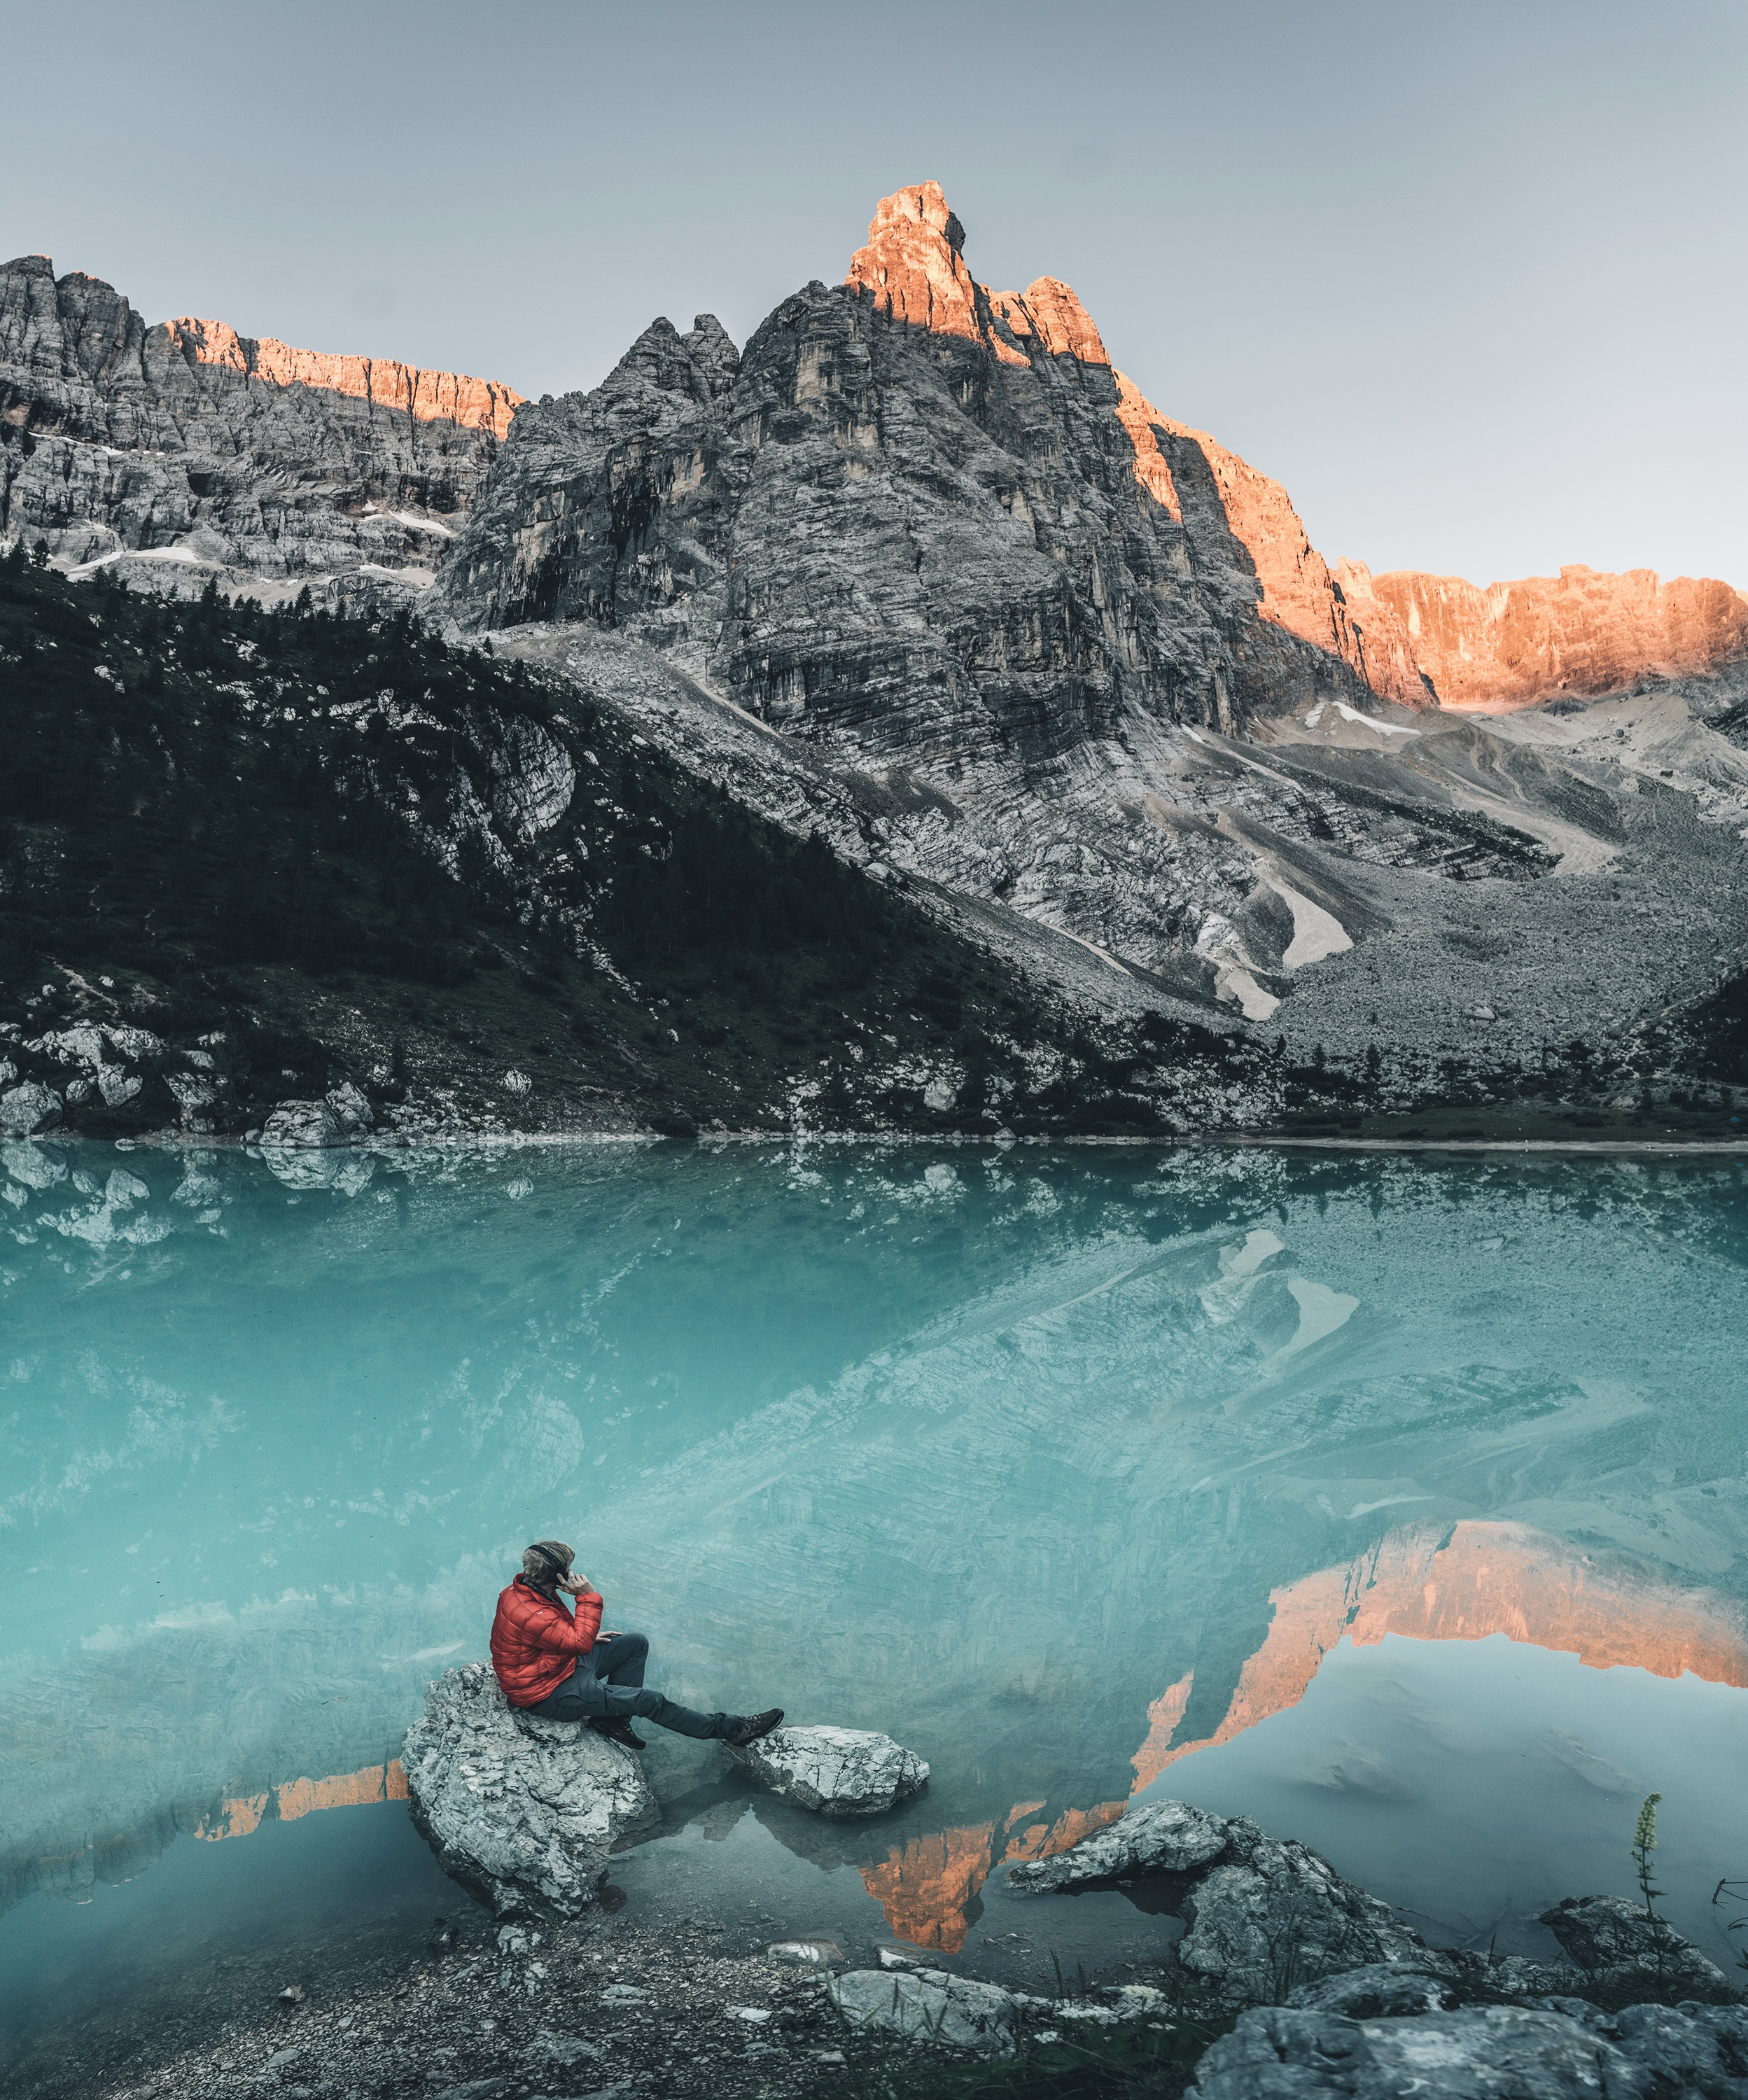 Lennart Pagel  is listening to the soundtrack of sunrise at Lago di Sorapis, Italy.